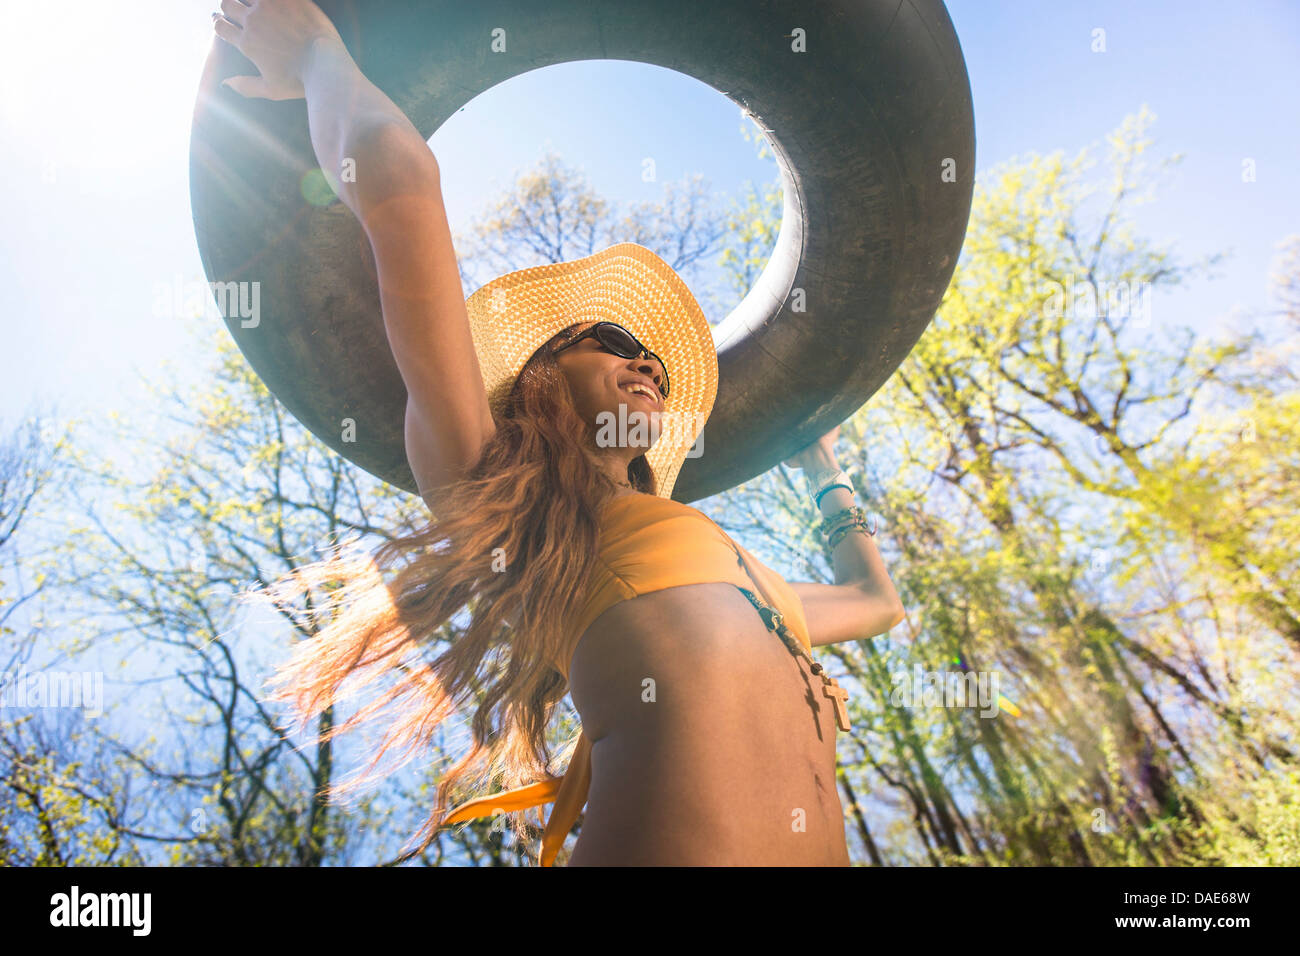 Woman wearing hat and sunglasses carrying inner tube above head - Stock Image